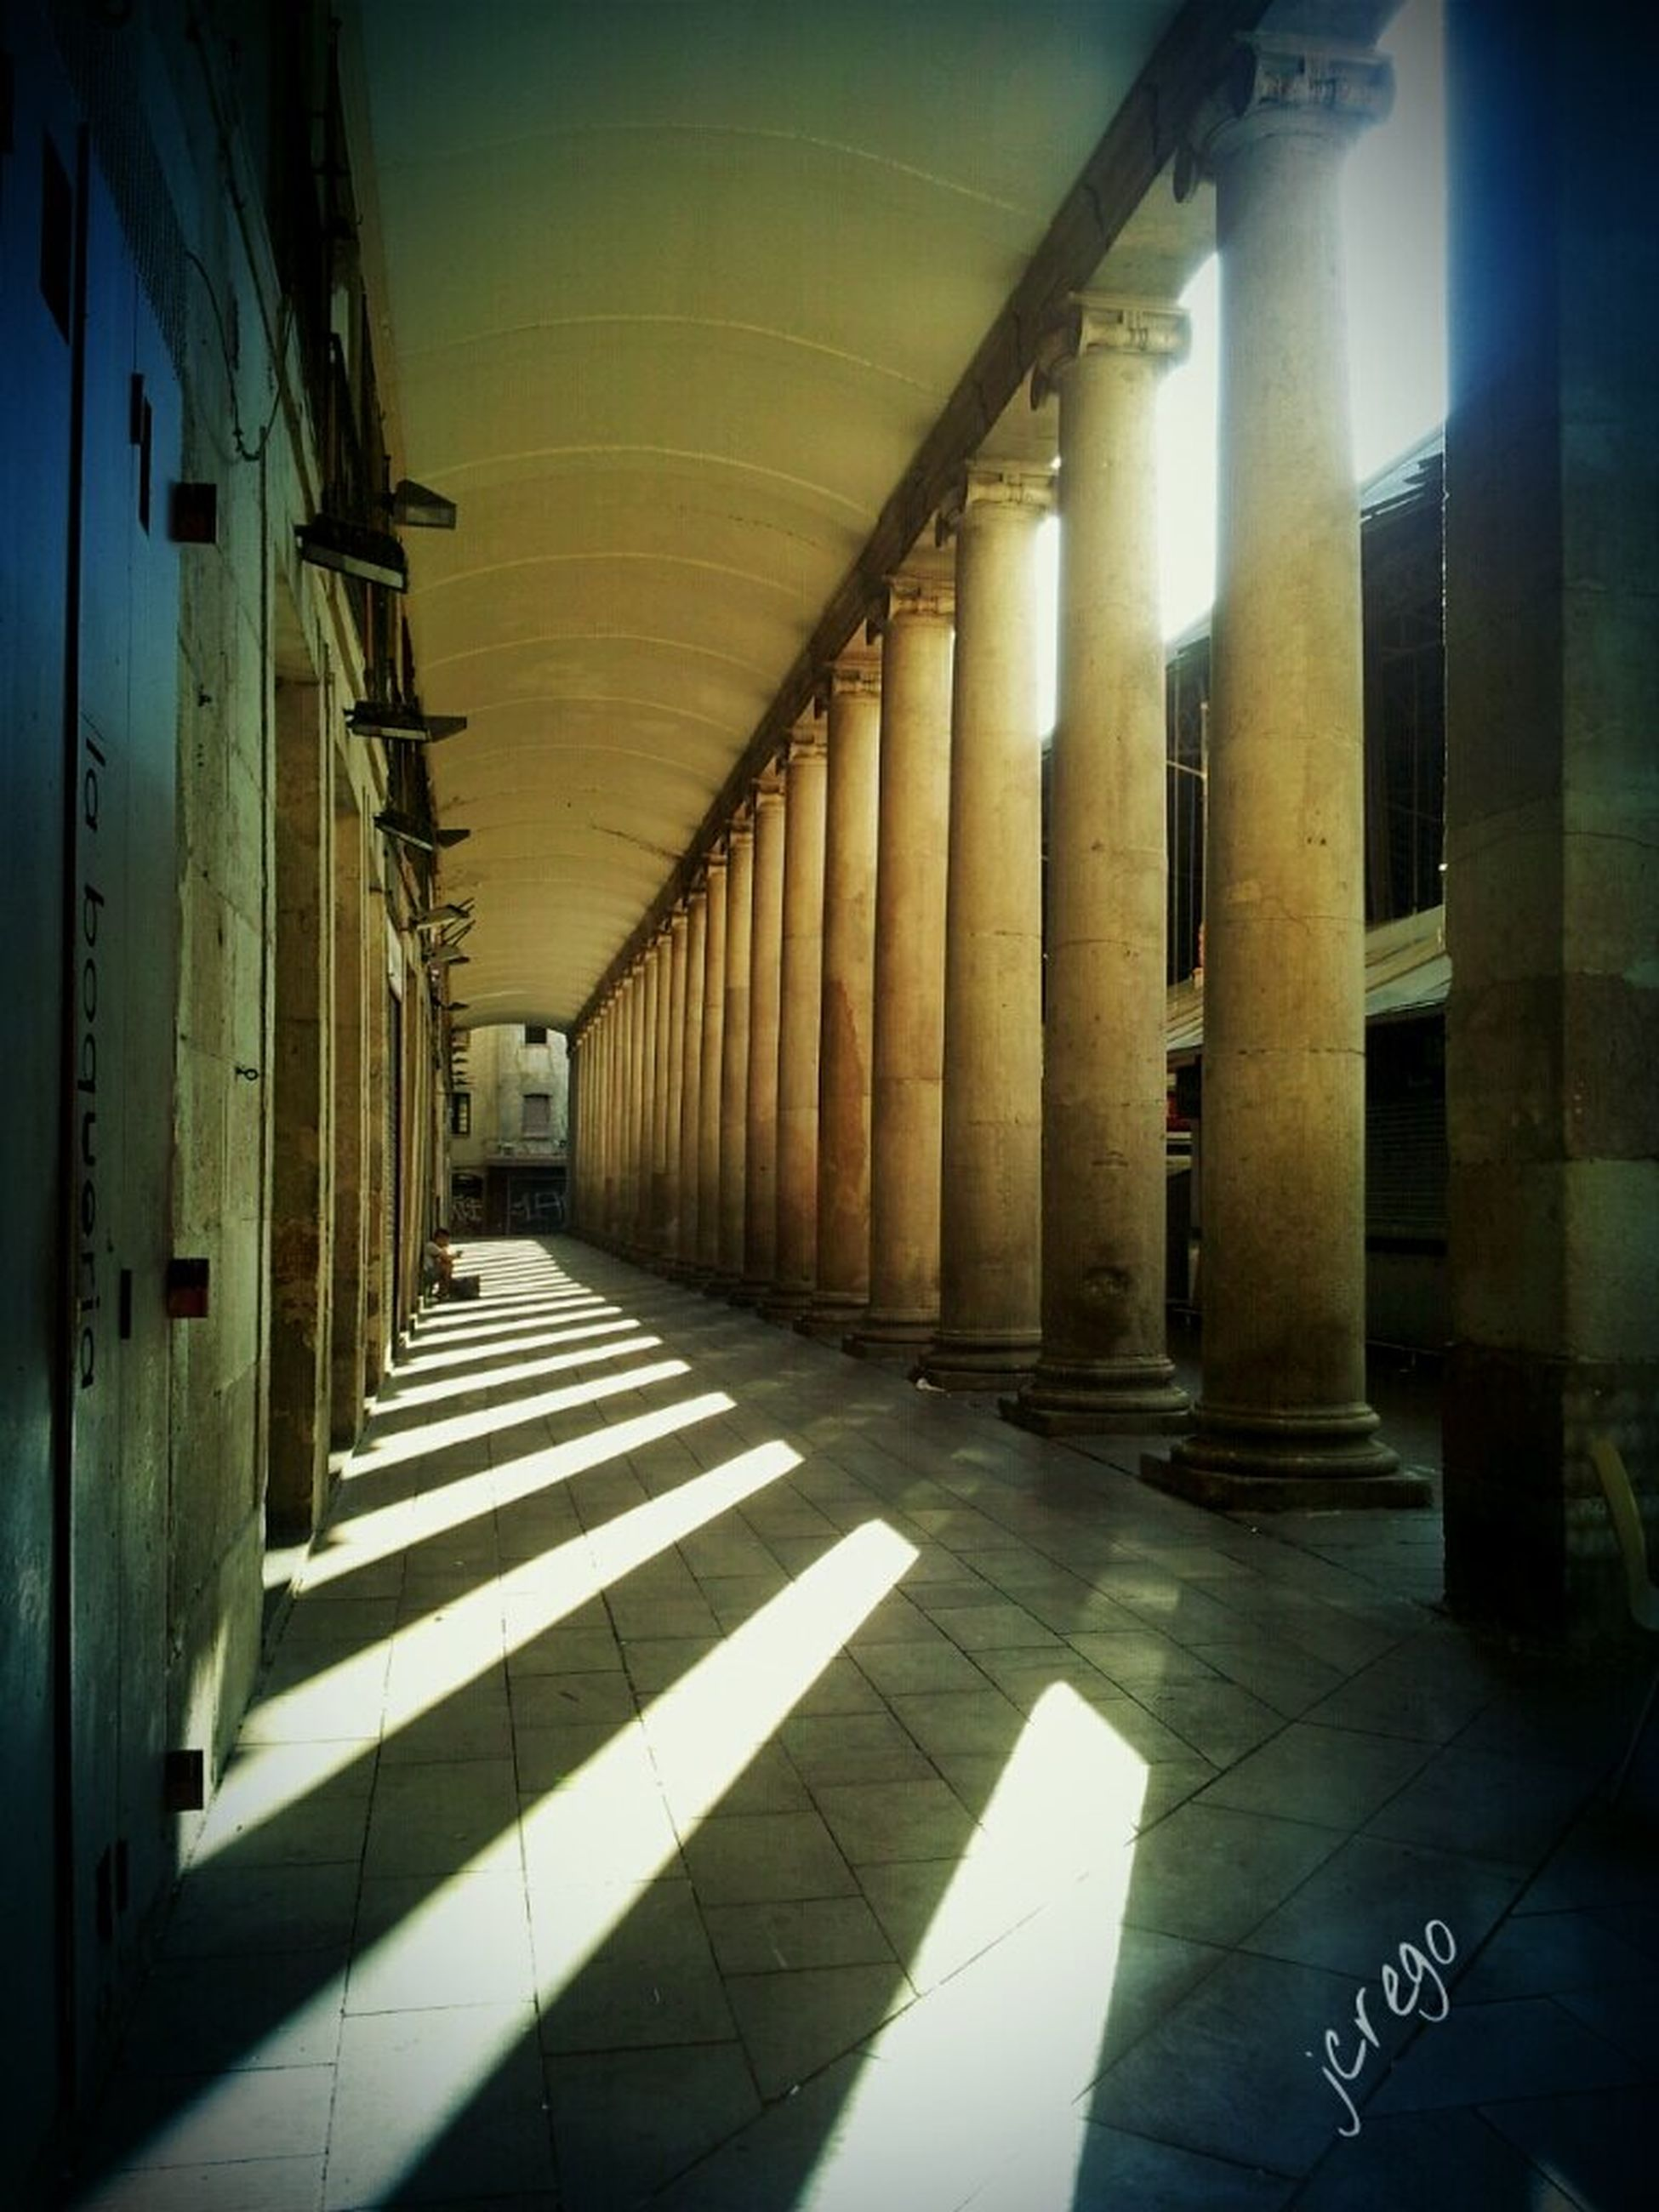 indoors, corridor, architecture, the way forward, built structure, architectural column, diminishing perspective, column, flooring, empty, in a row, colonnade, tiled floor, building, narrow, ceiling, sunlight, absence, vanishing point, shadow